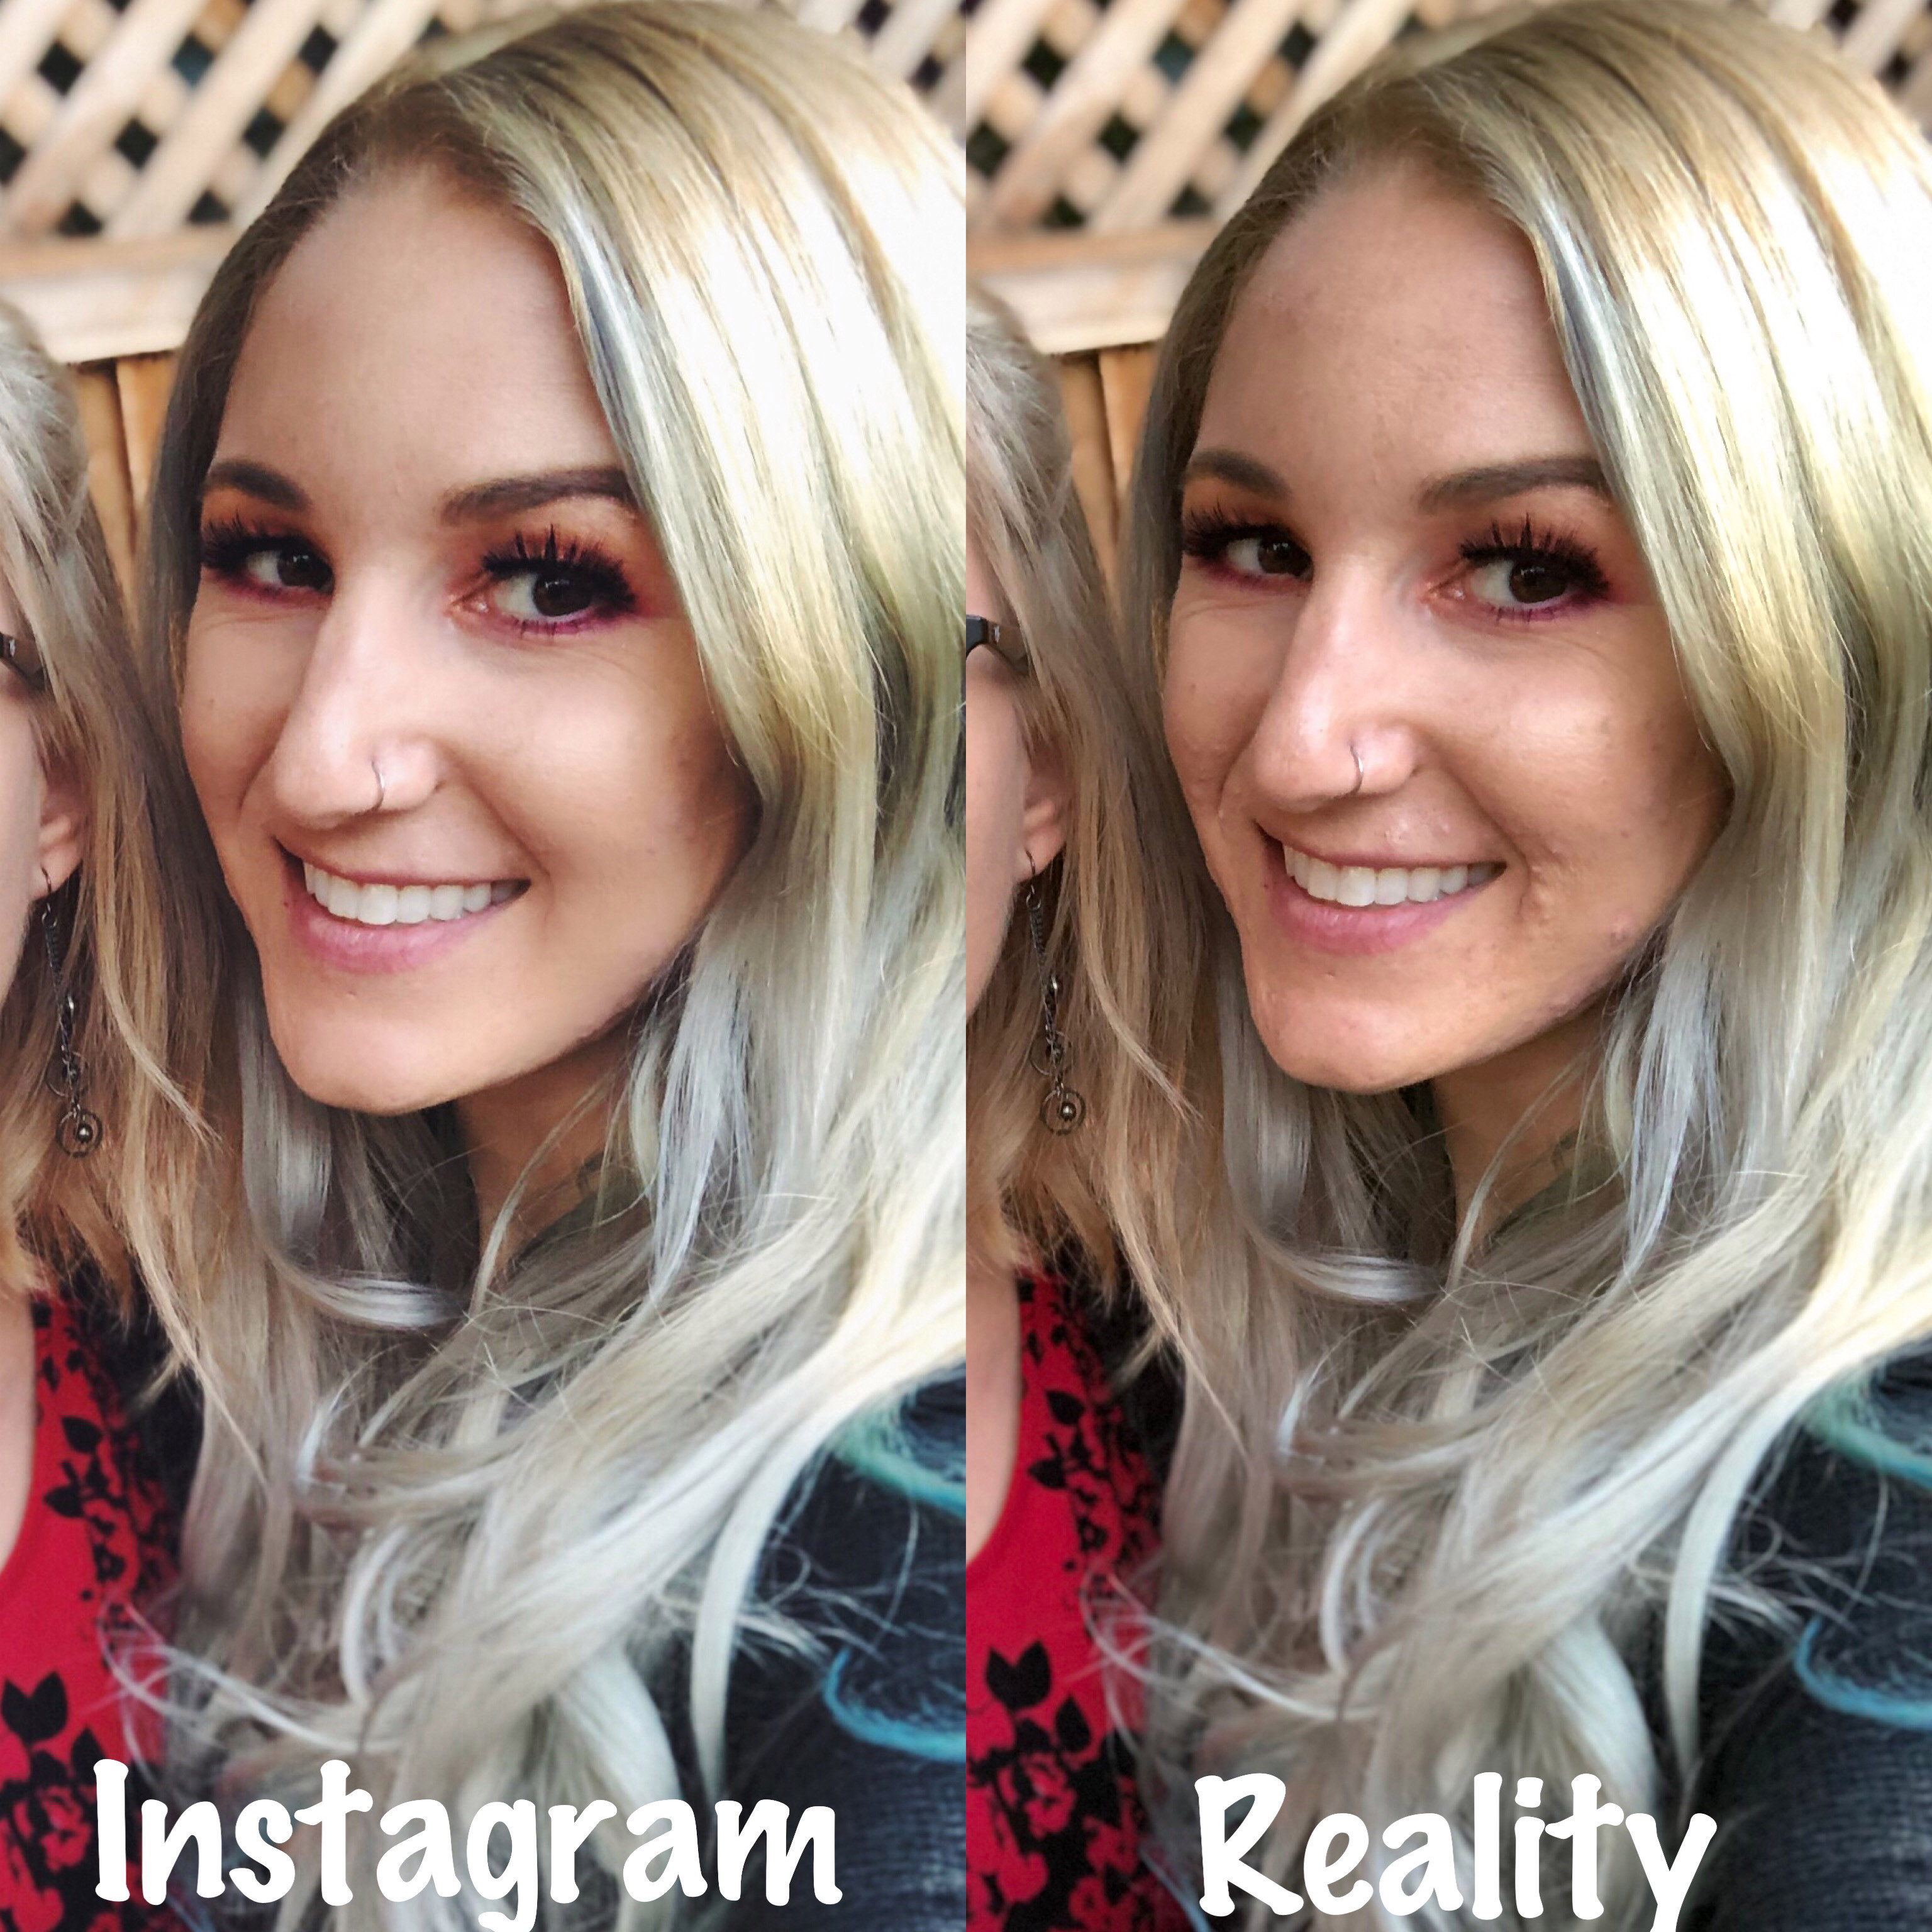 The 30-year-old says she feels like a 'catfish' when using editing apps